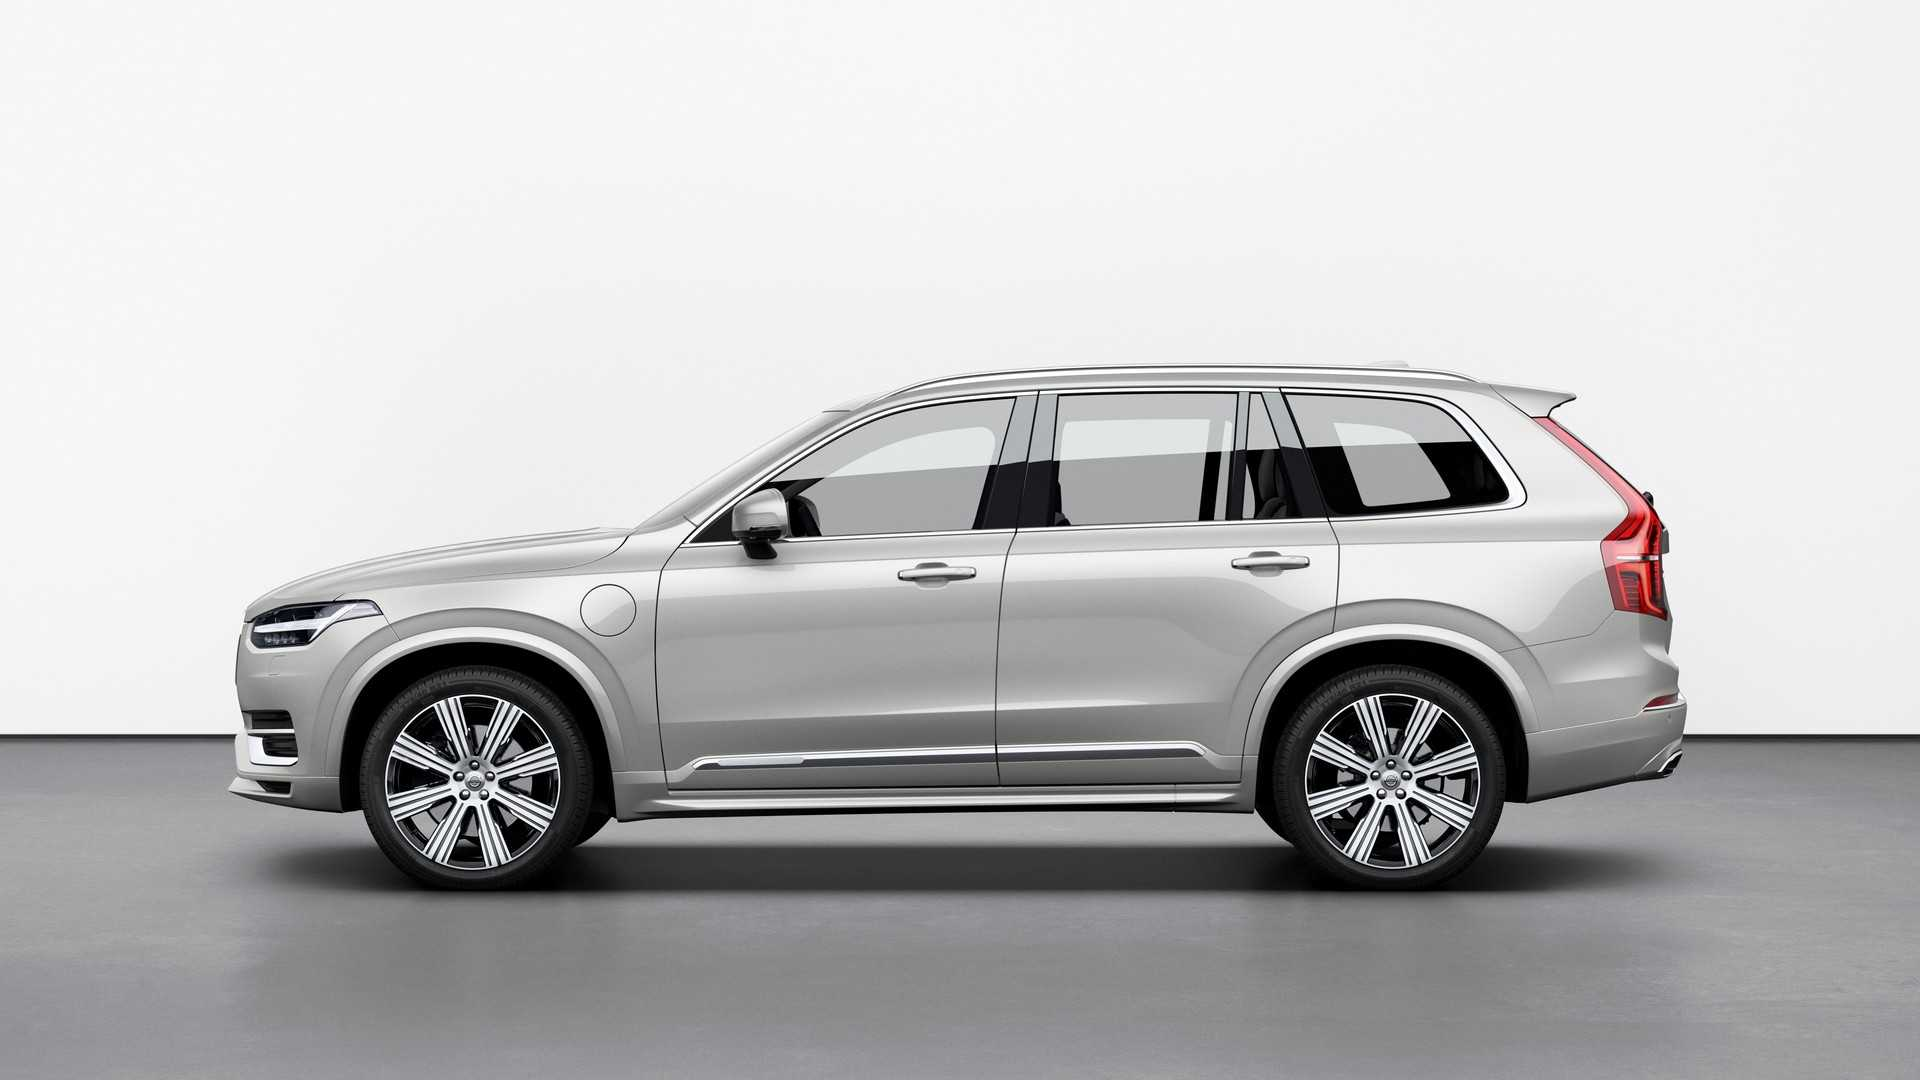 64 Best Review Volvo Xc90 2020 Changes Specs and Review with Volvo Xc90 2020 Changes